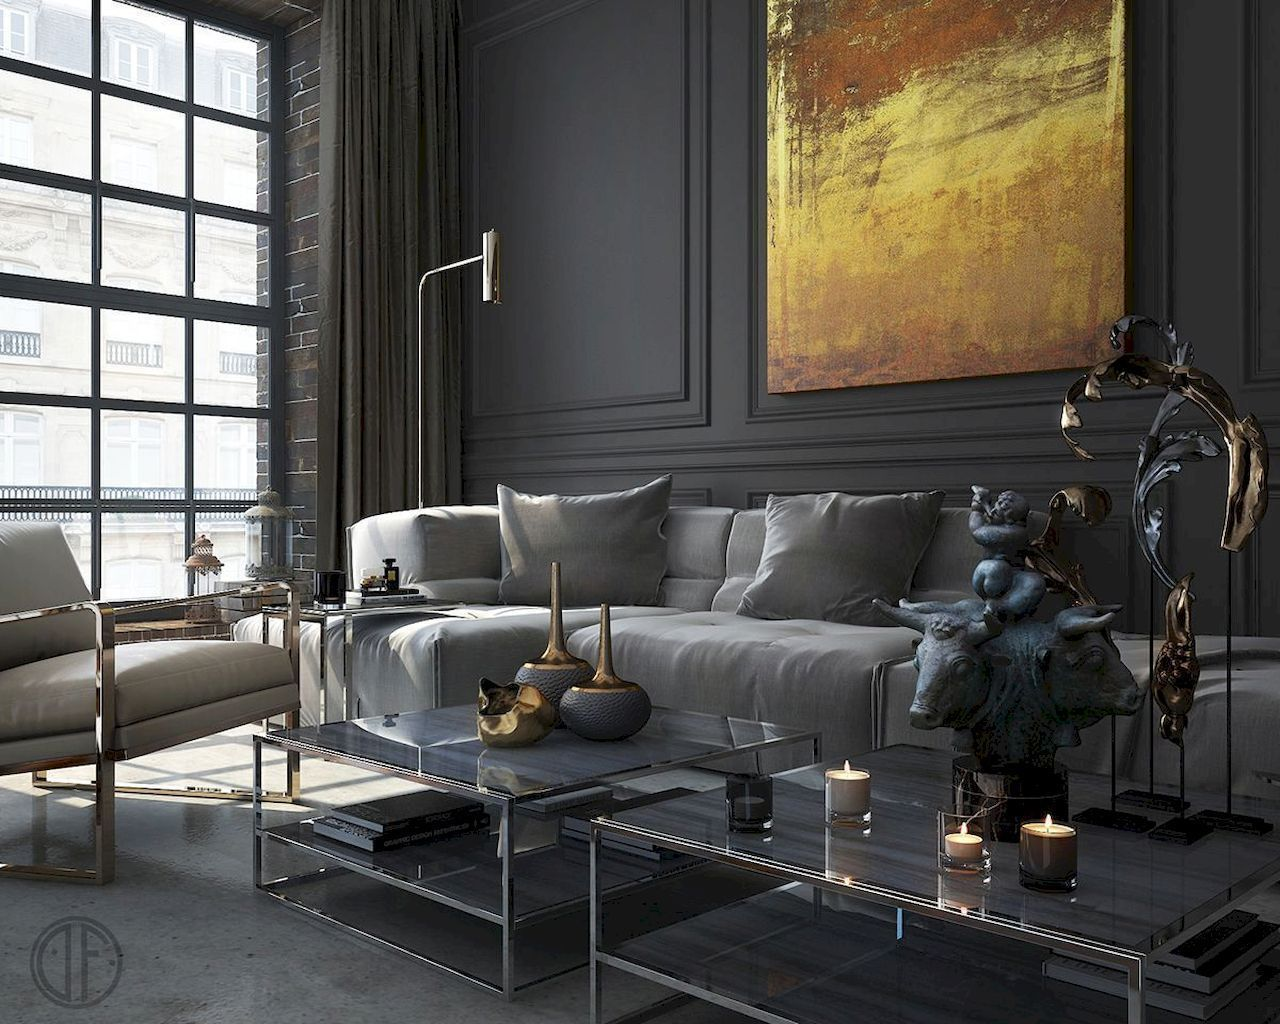 Modern Home Interiors And Design Ideas From The Best In Condos